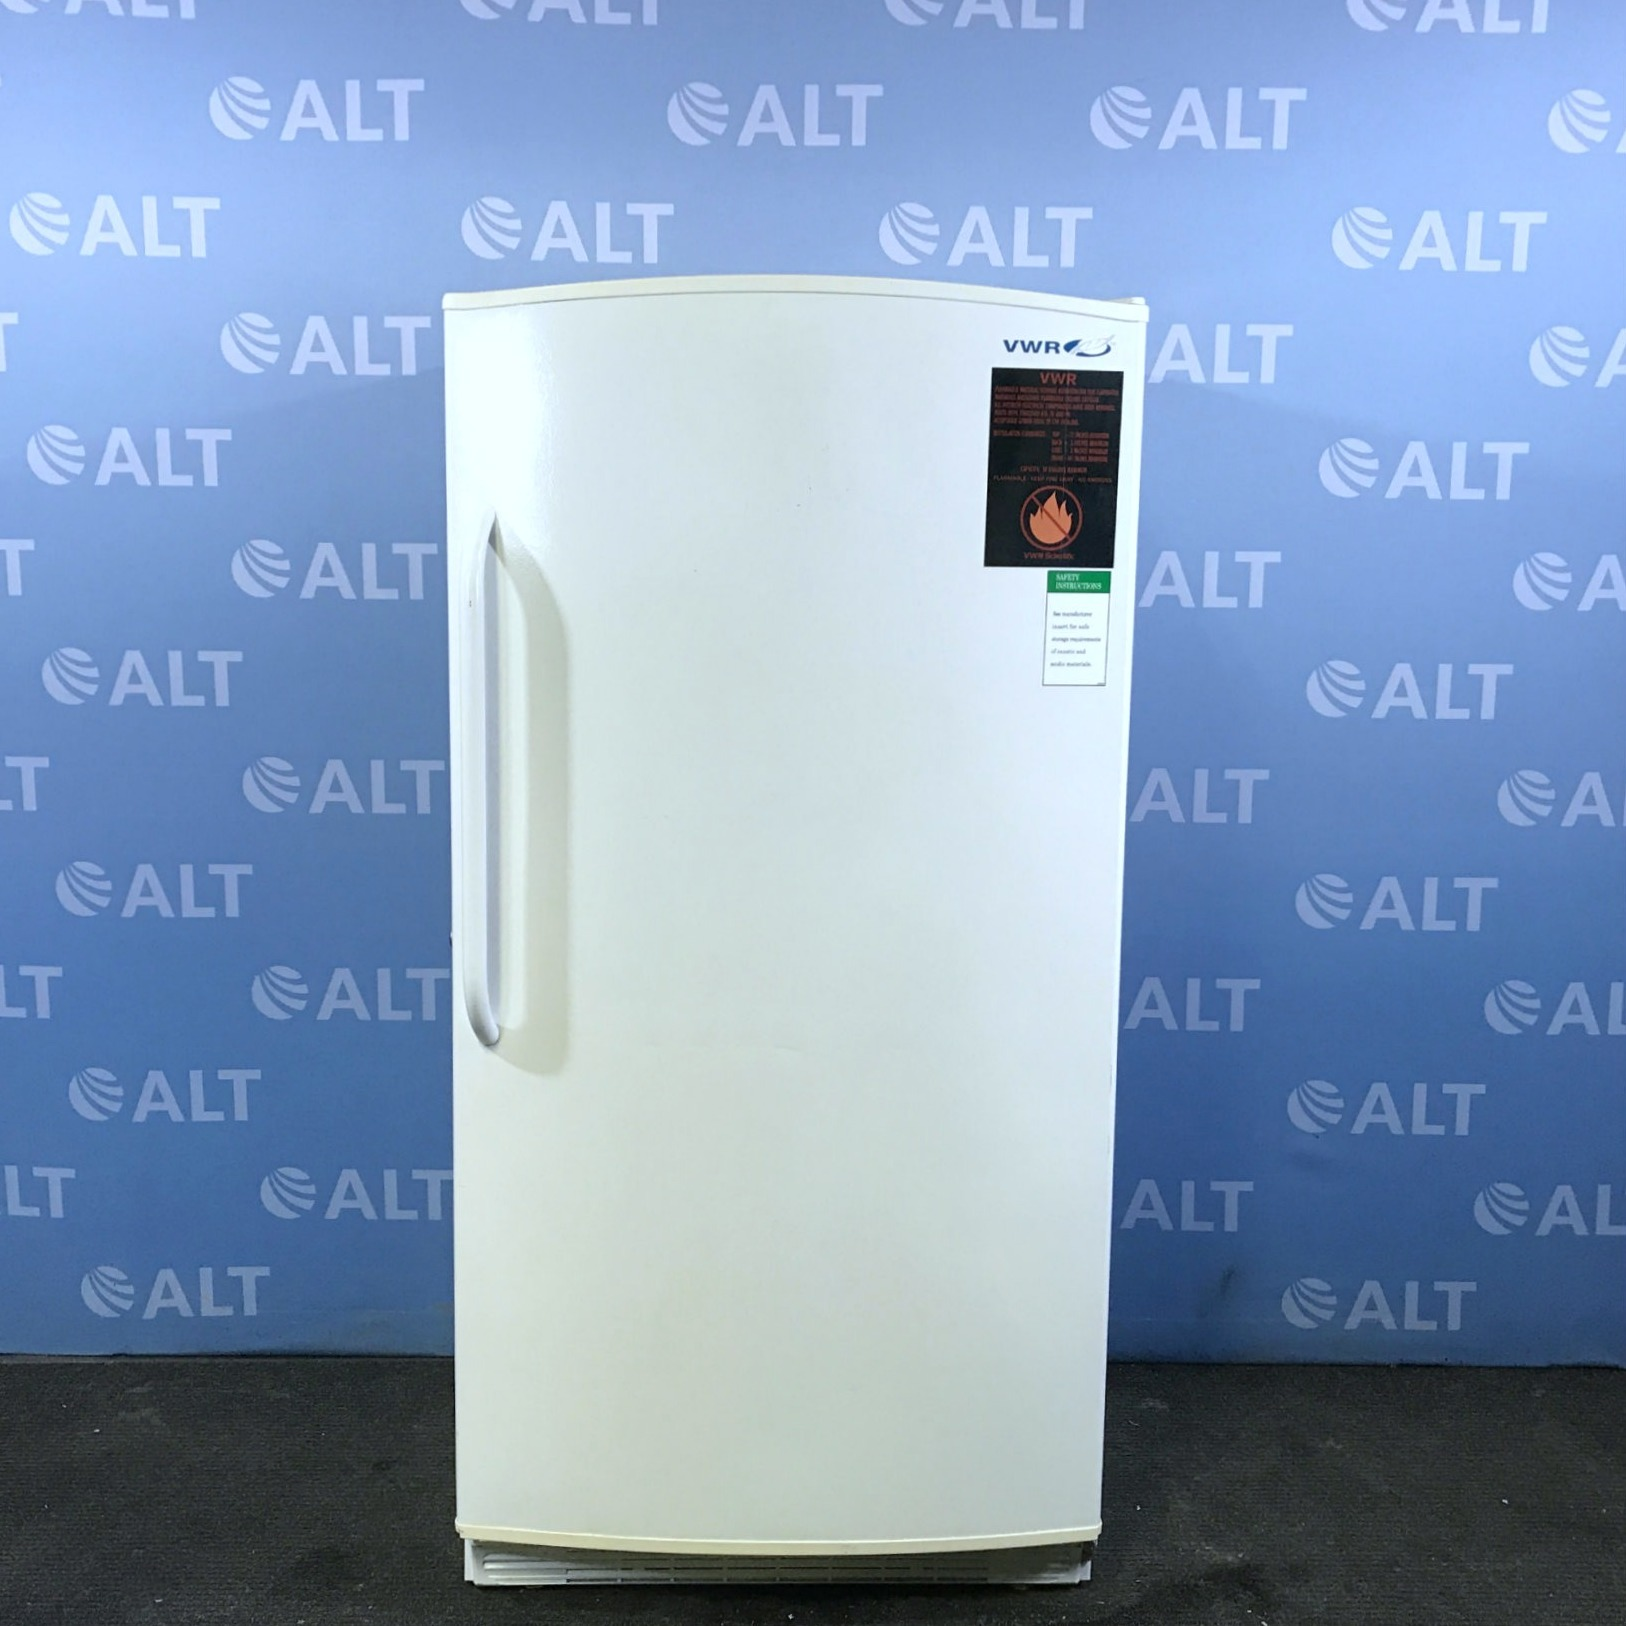 VWR U2020FA15 -20 Flammable Materials Freezer. Flammable Image